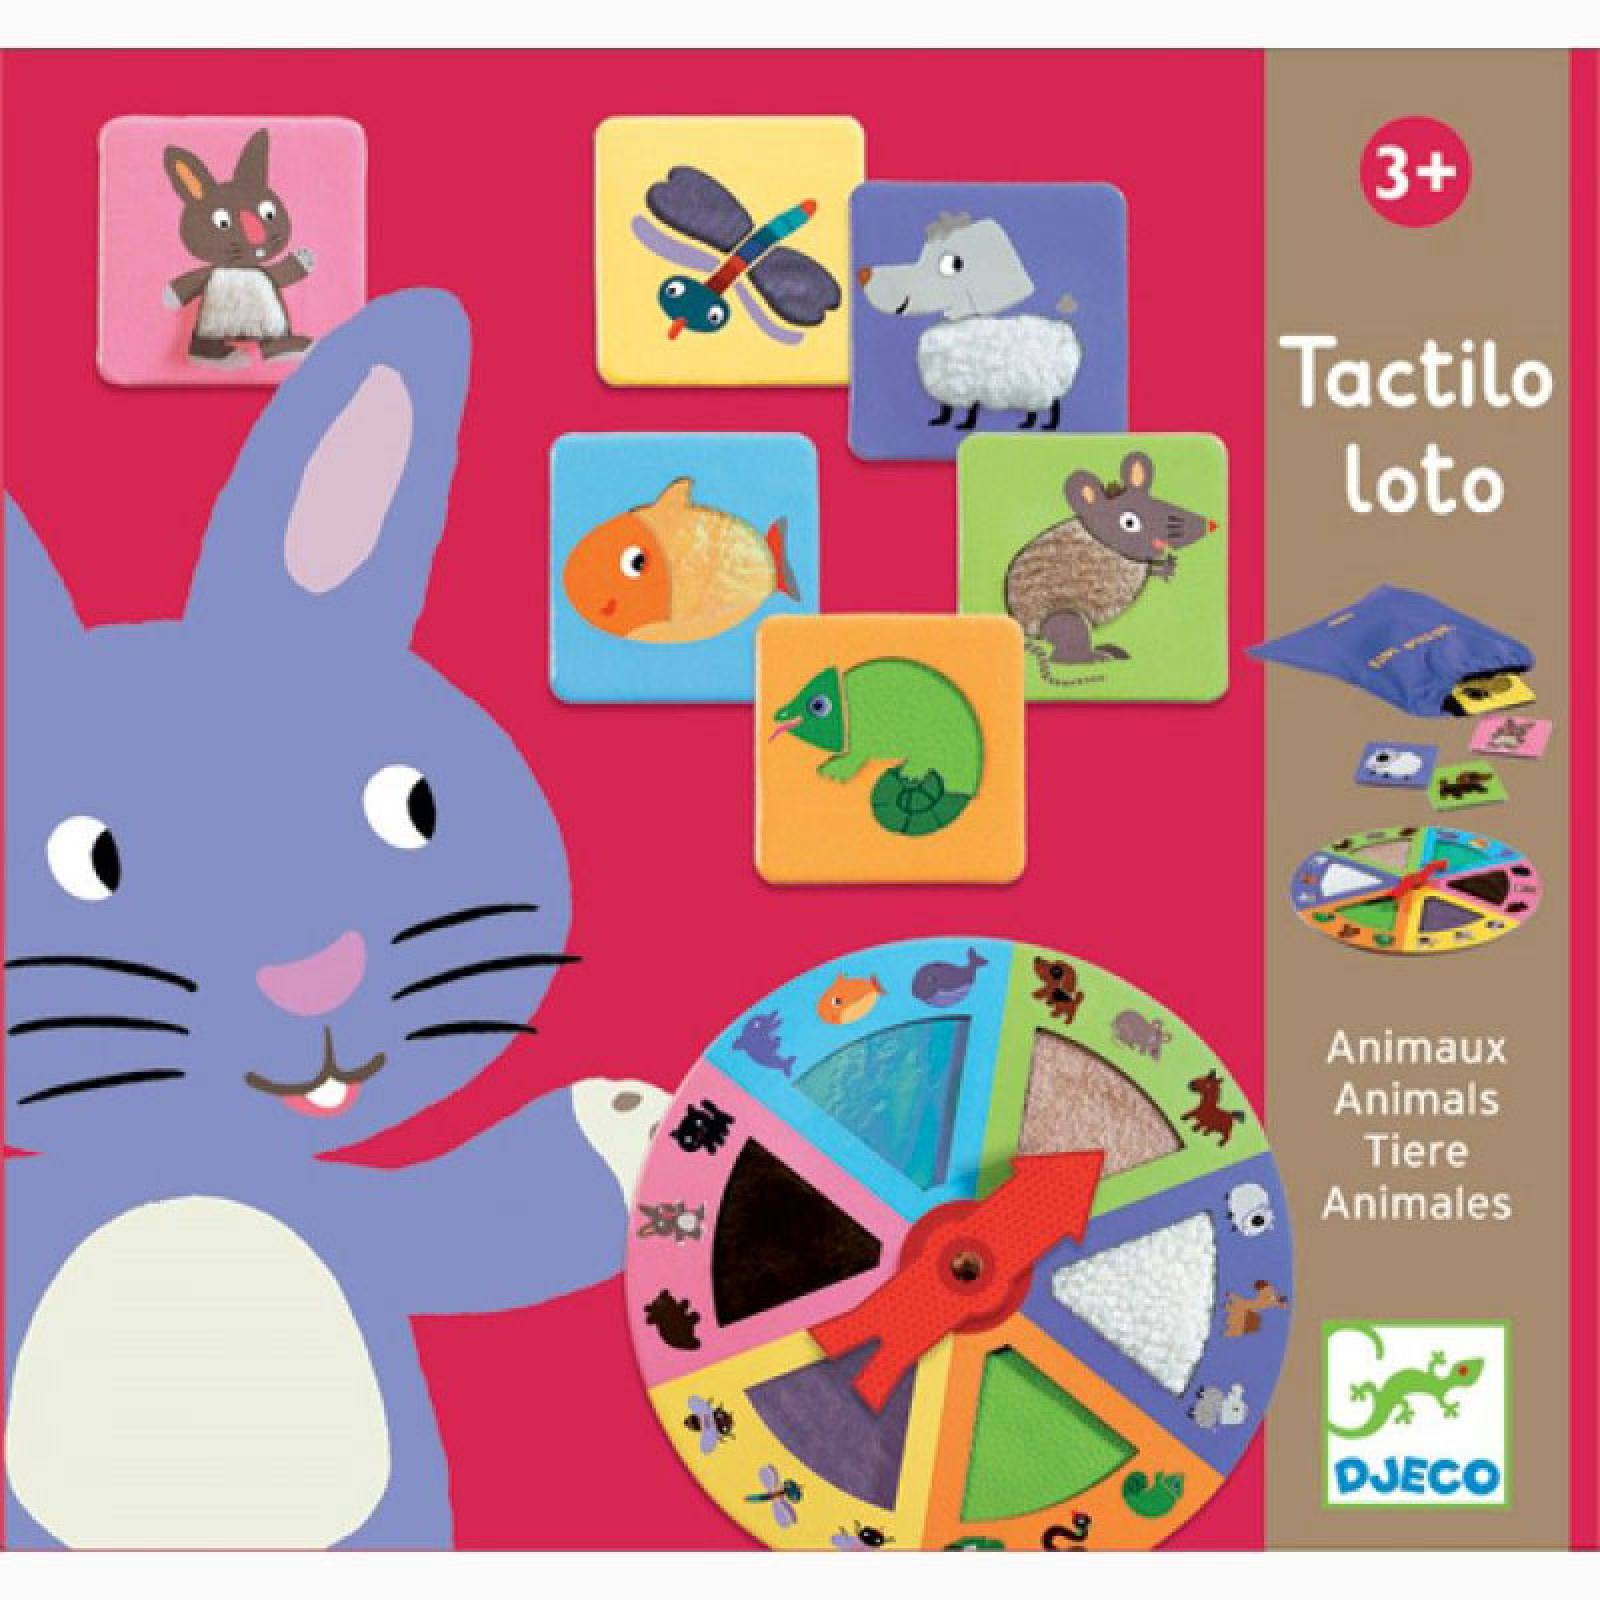 Tactile Loto Game - Animals By Djeco 3+ thumbnails